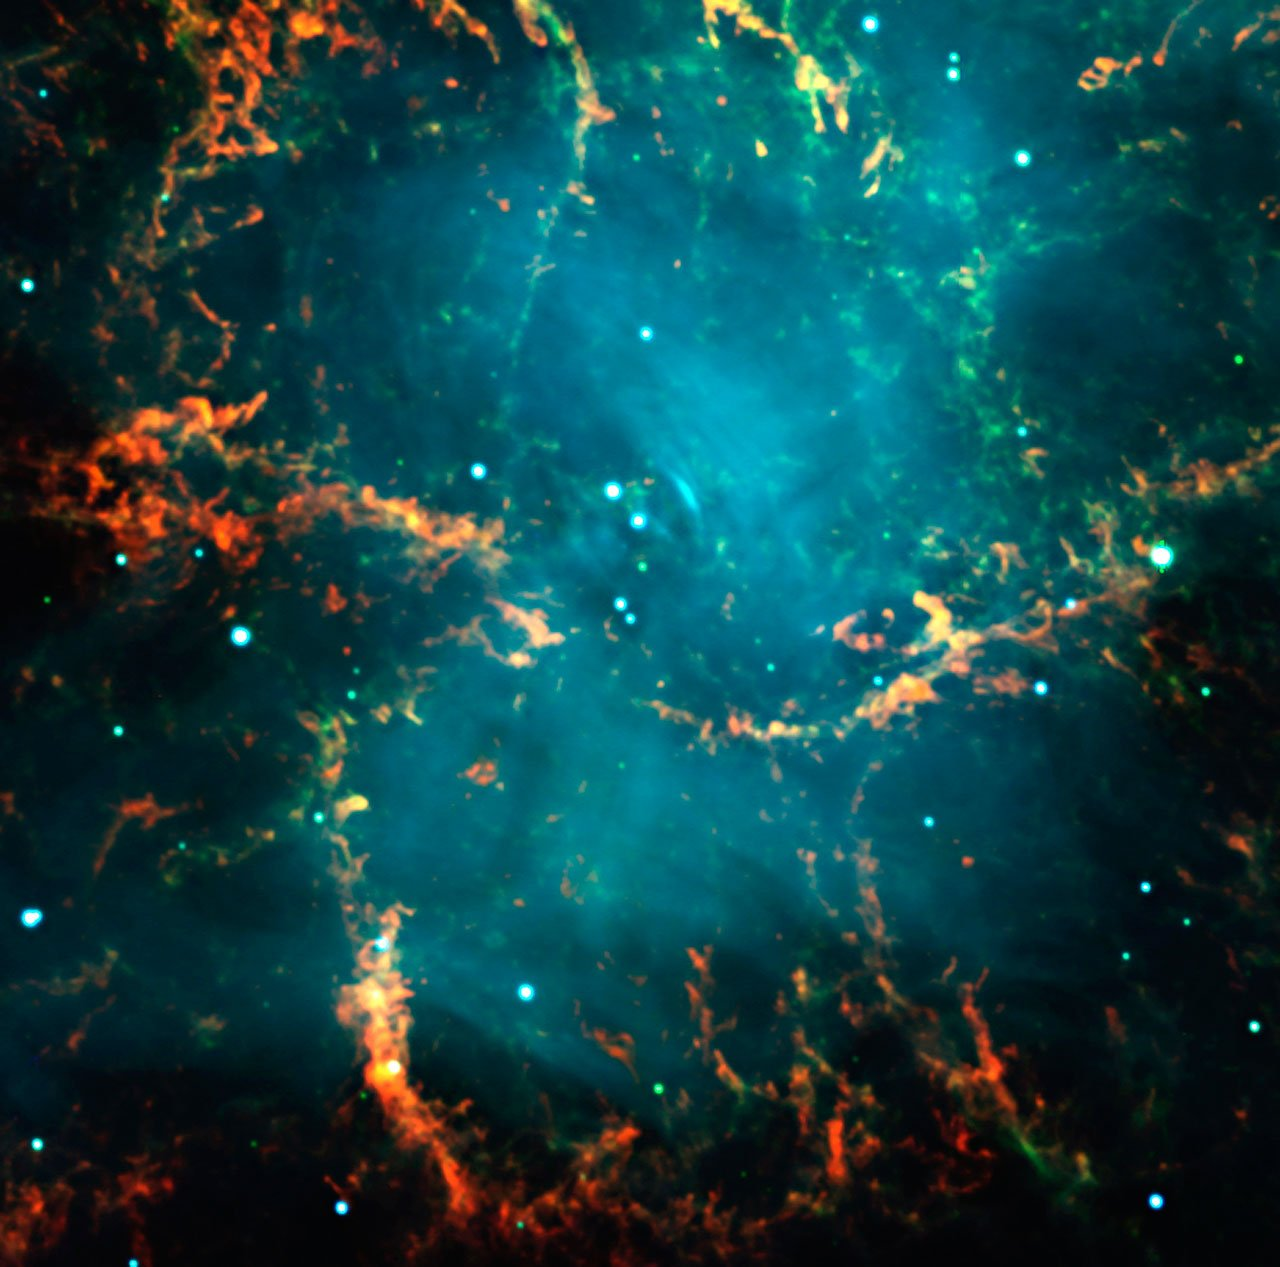 Crab Nebula 3945 Hd Wallpapers in Space   Imagescicom 1280x1267